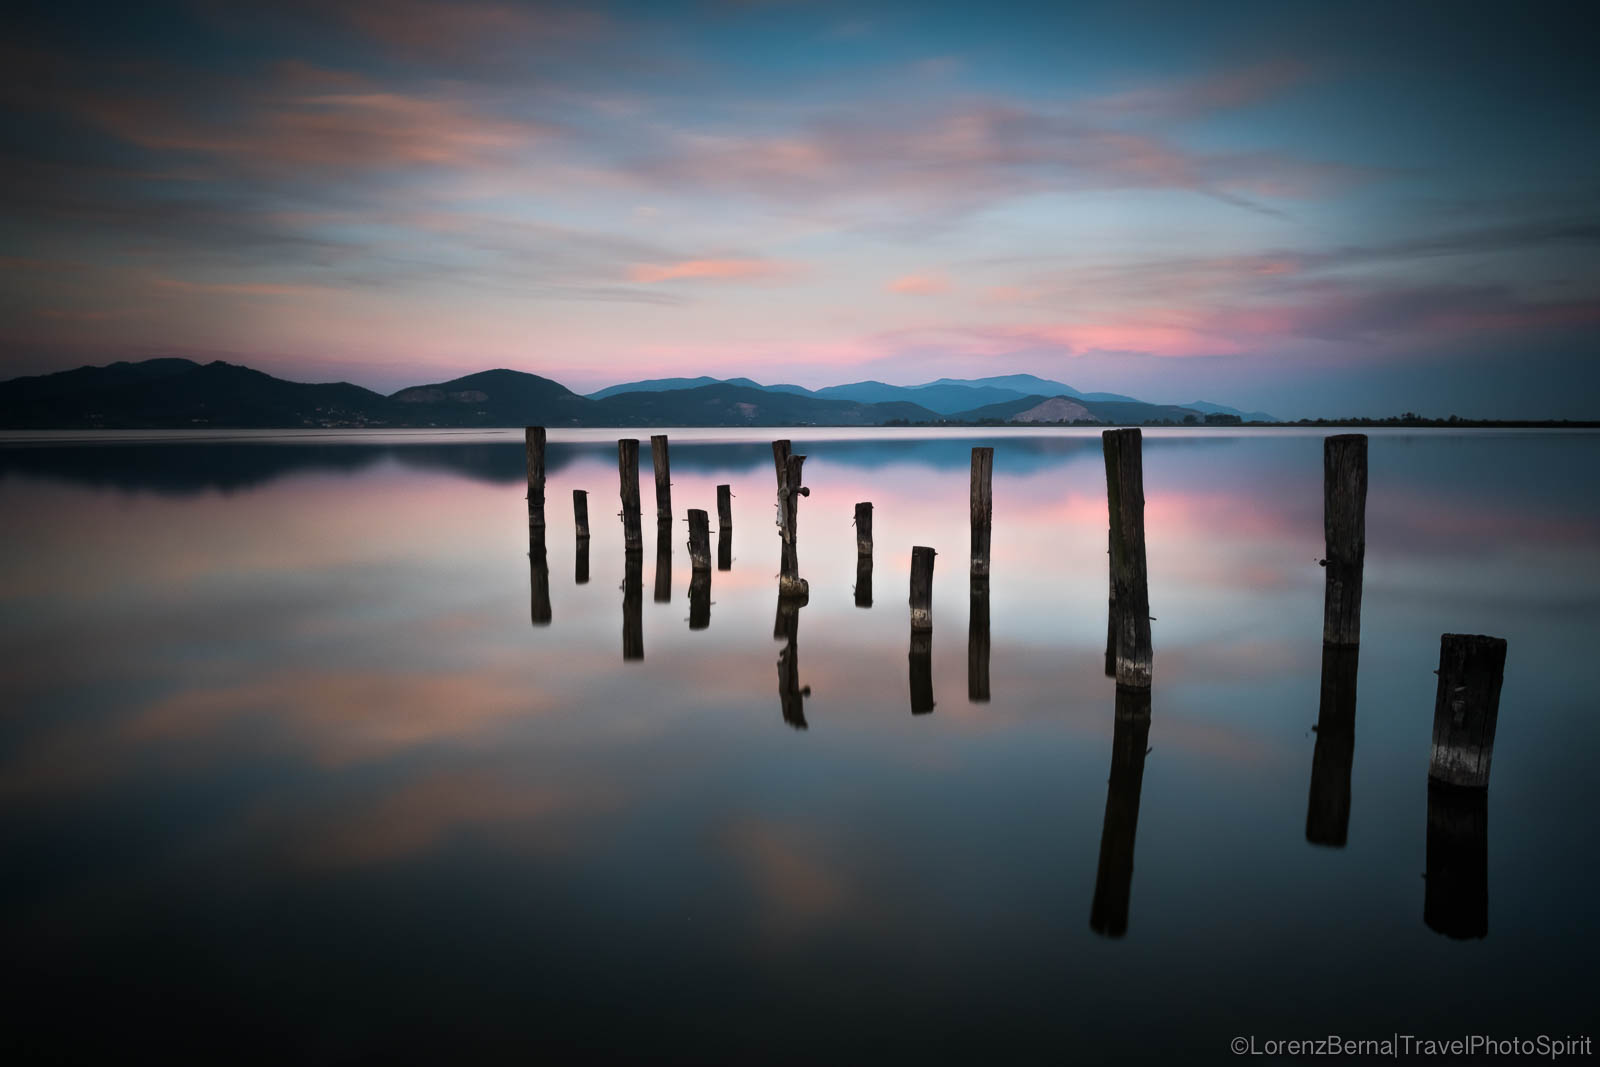 Twilight at Massaciuccoli lake, Tuscany - A Lorenz Berna Photography of Italy